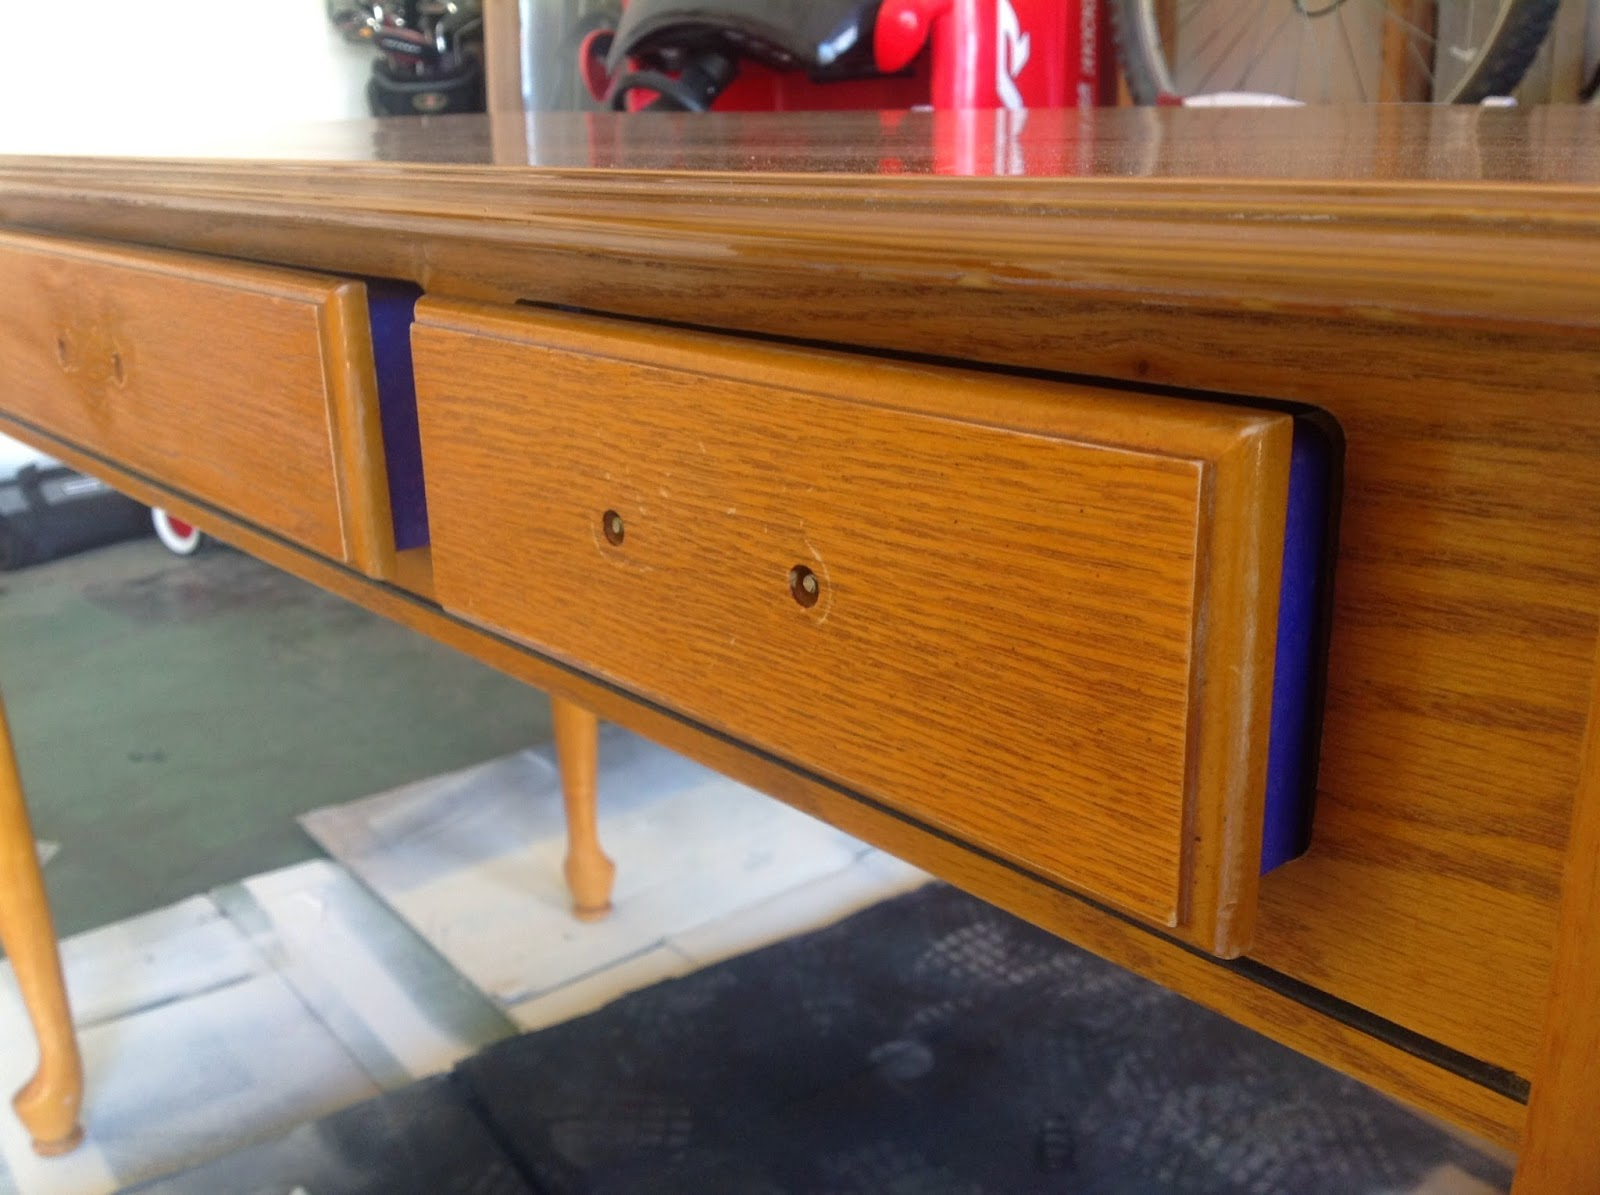 Only a thin strip of tape will prevent paint to be sprayed all over the inside of the drawers.